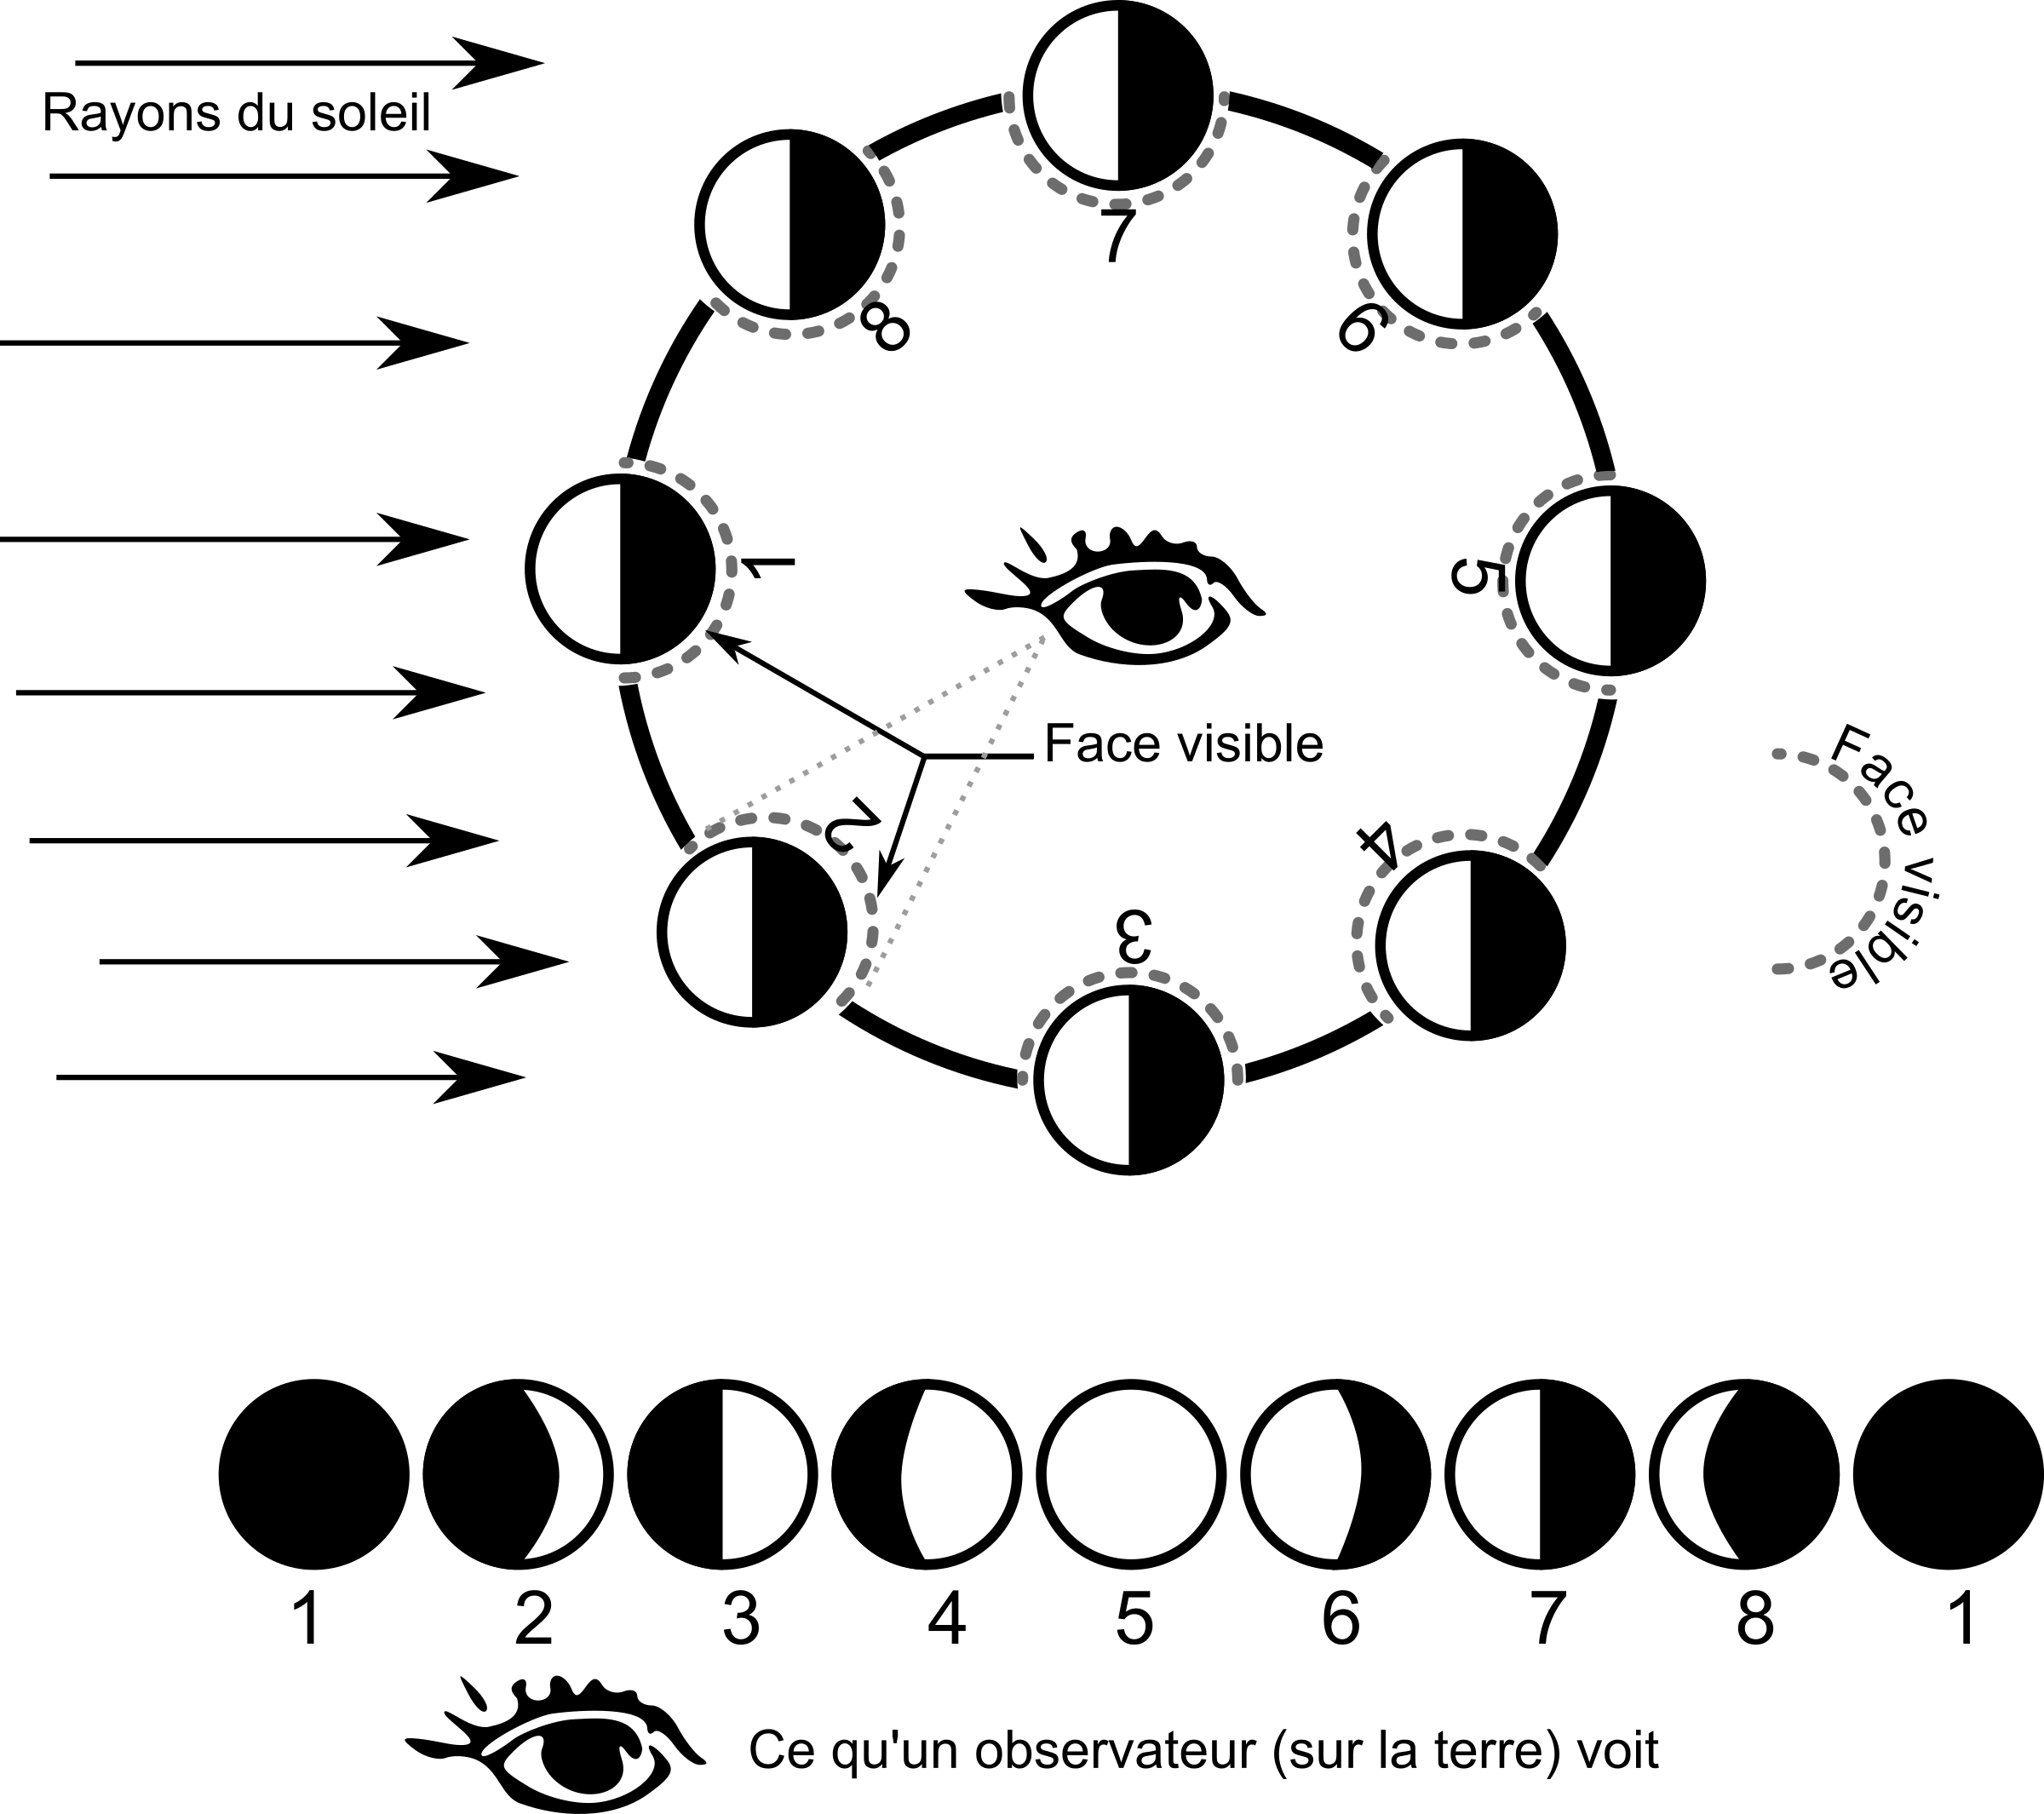 Cycle clipart sequence card. Free moon phases cliparts